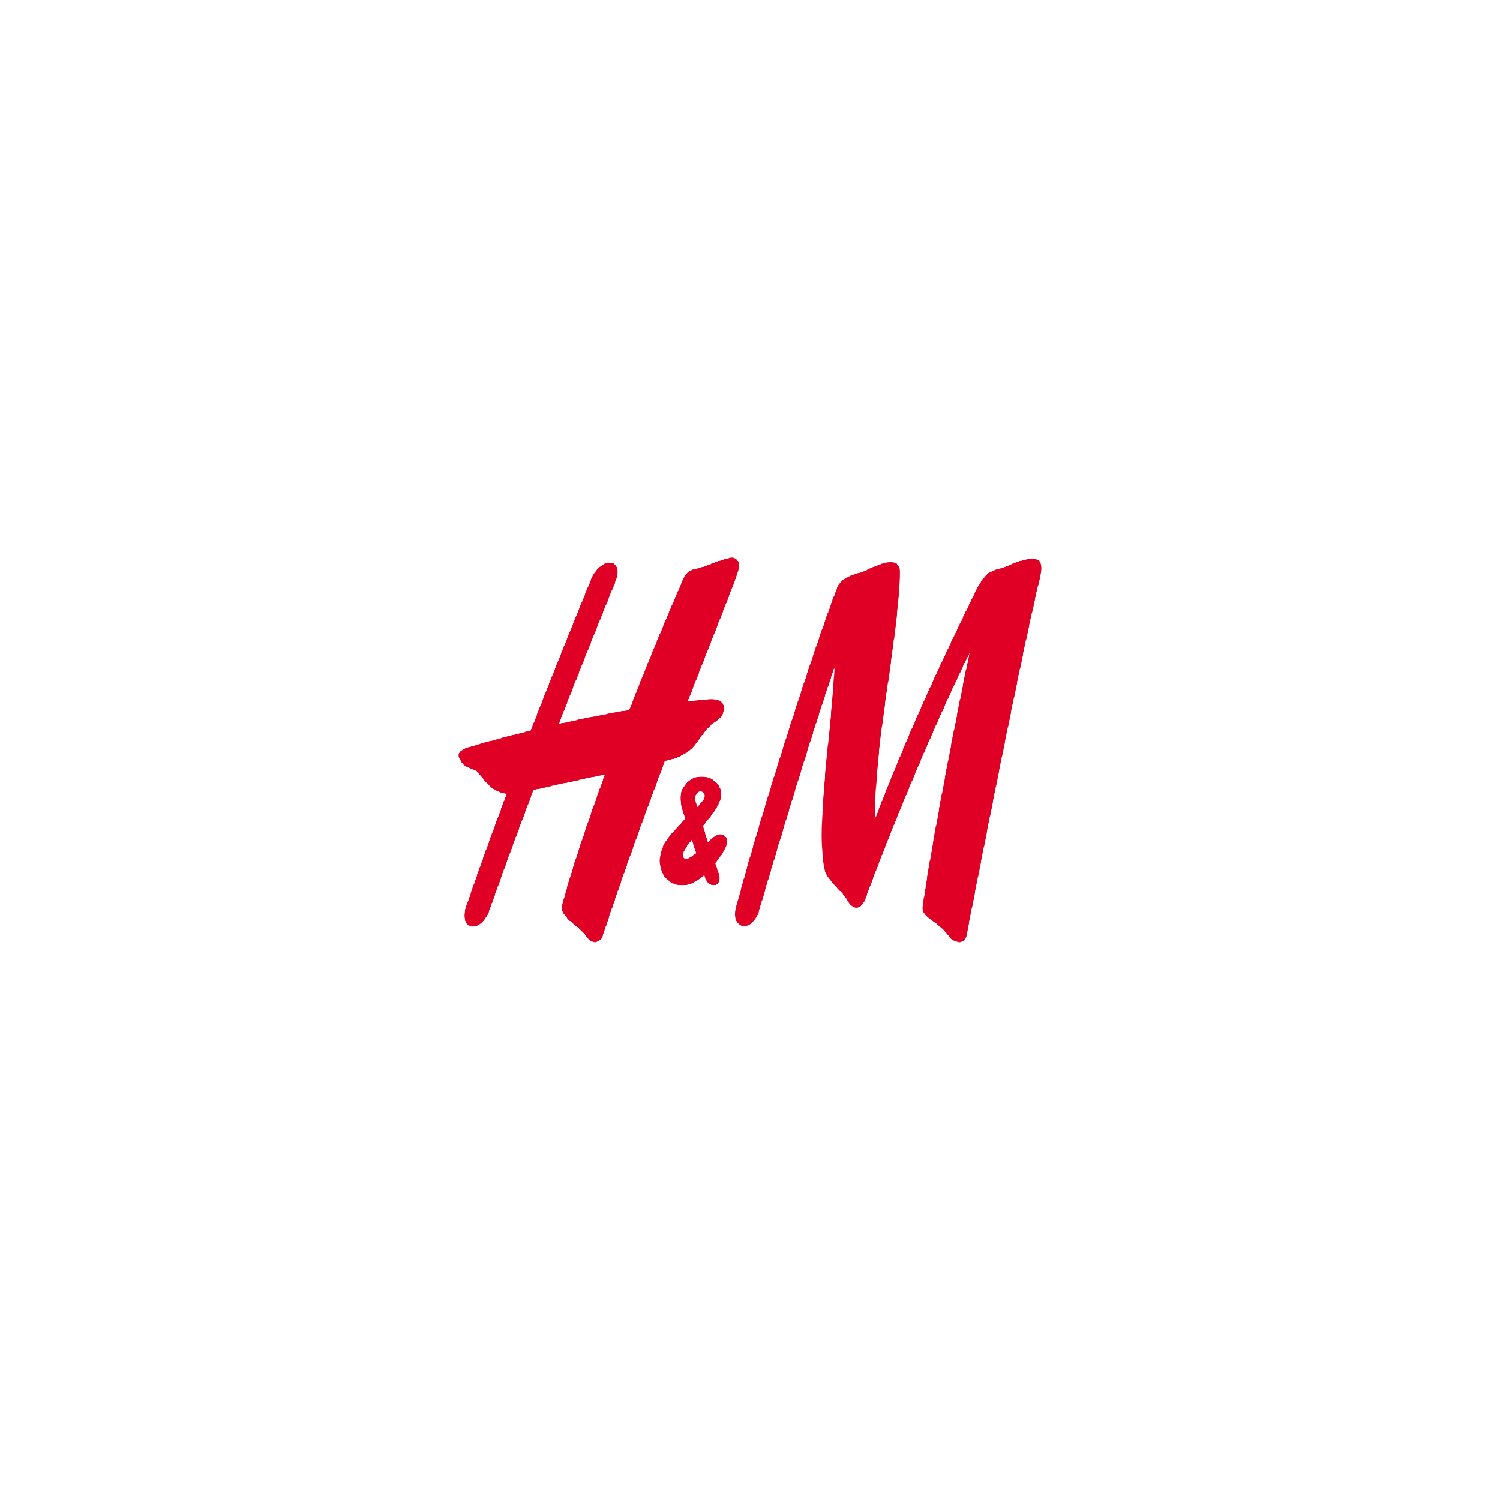 H&M.png